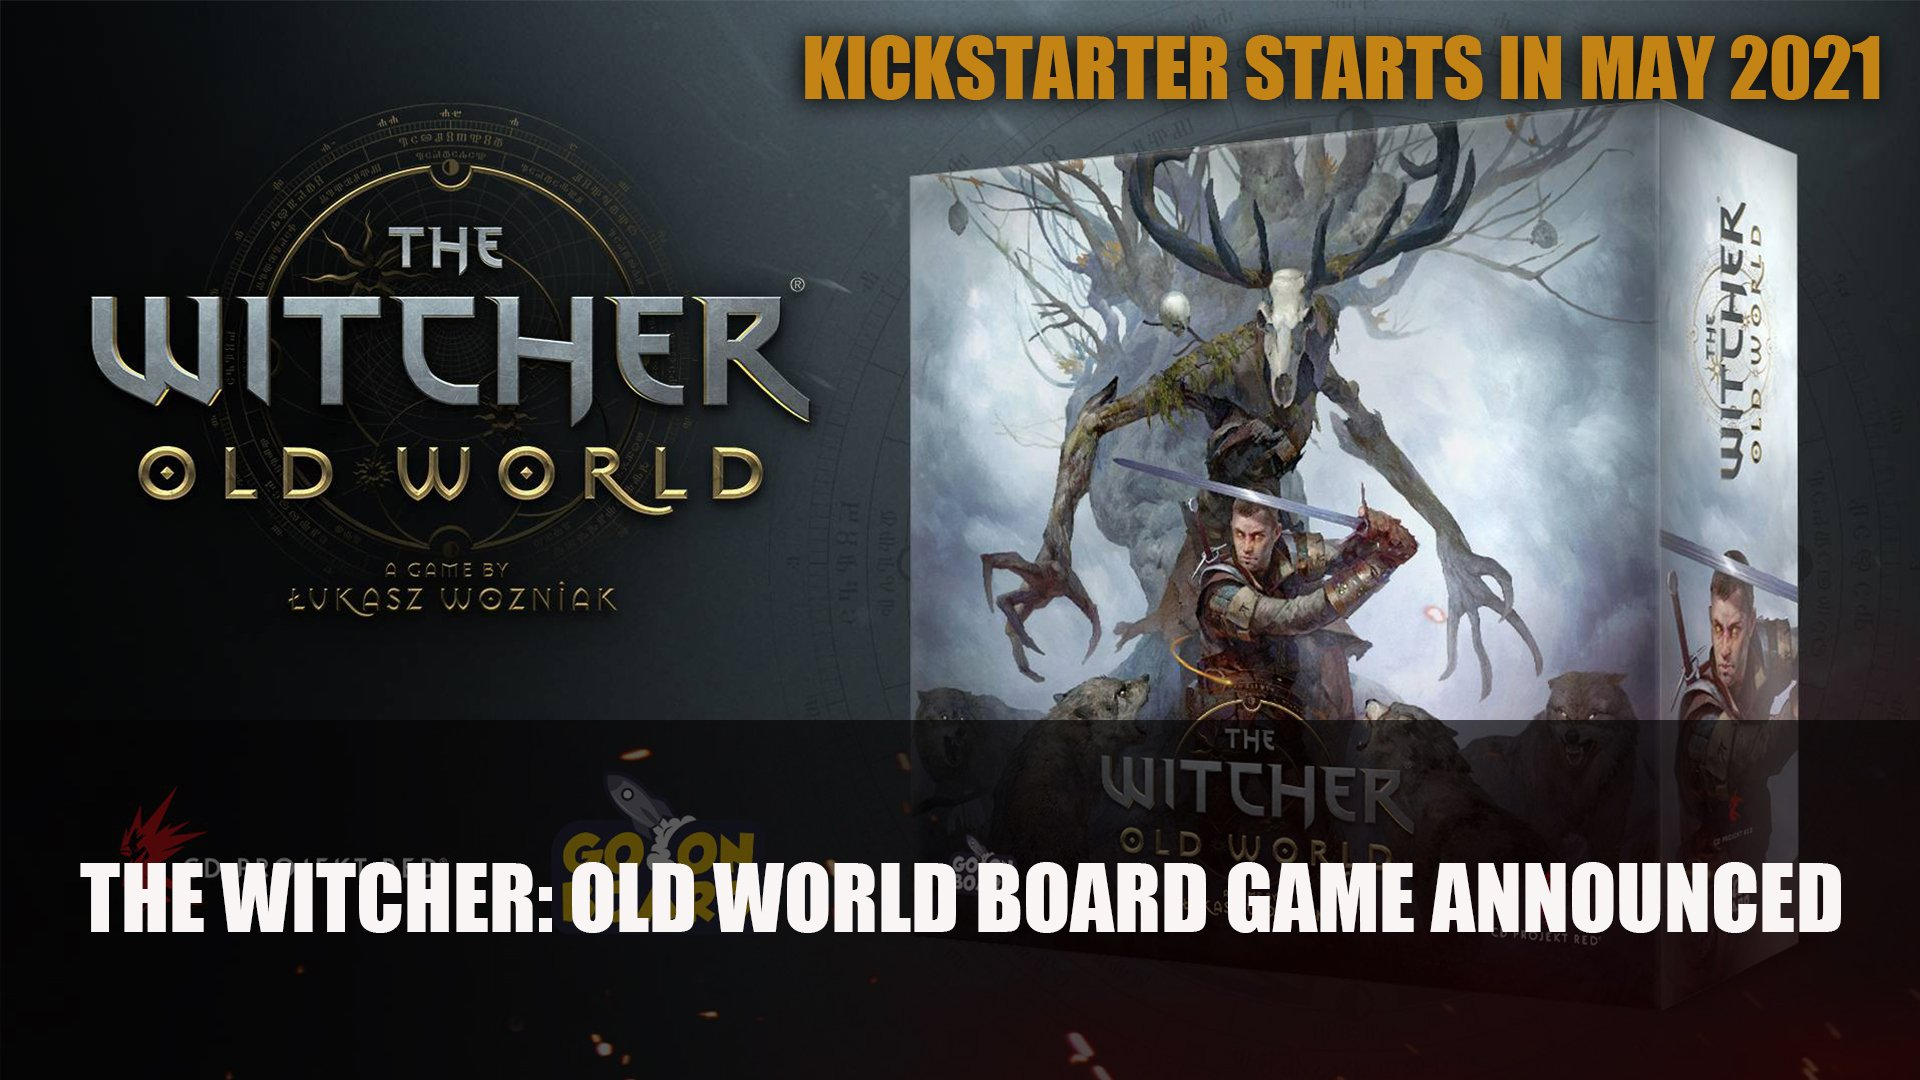 The Witcher: Old World Board Game Kickstarter Starts in May